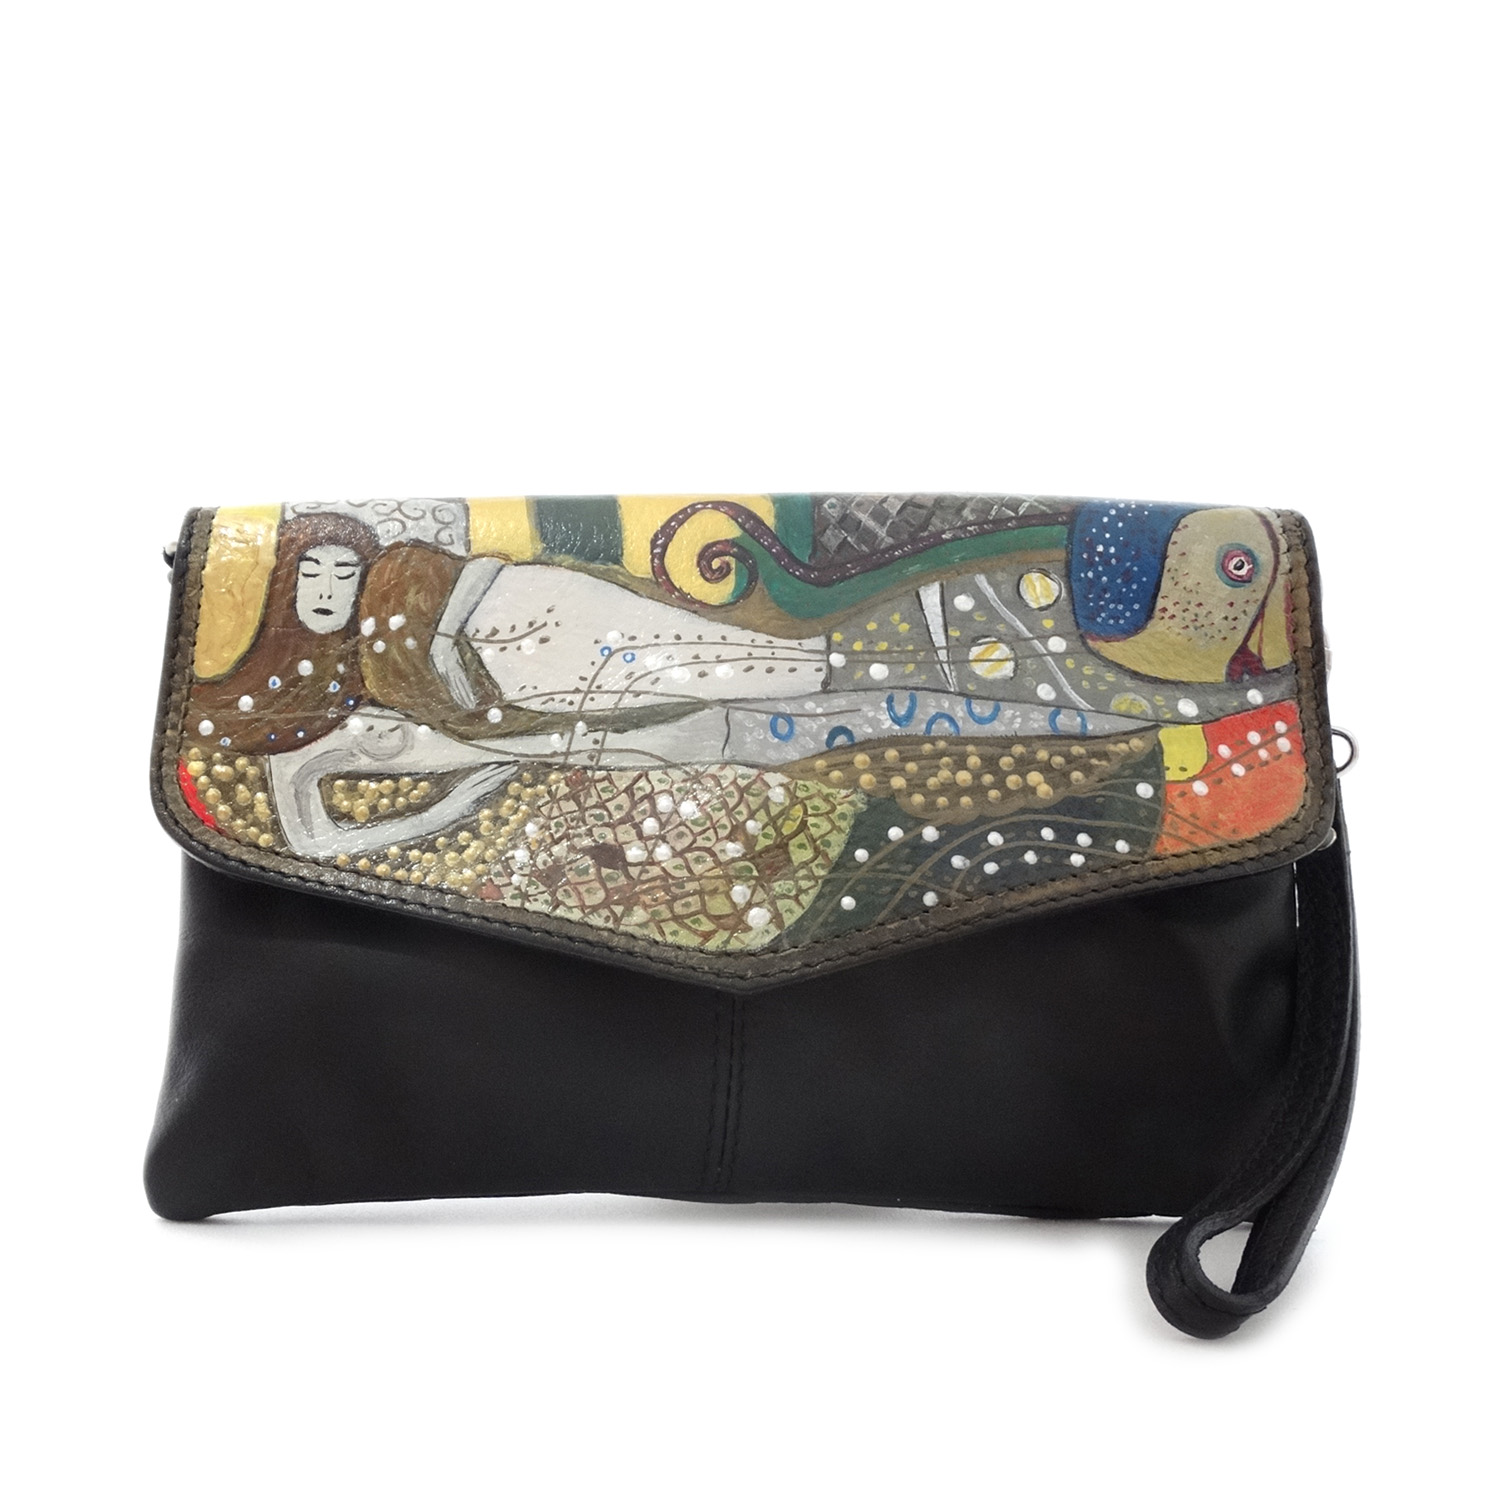 Hand painted bag - Water Snakes by Klimt